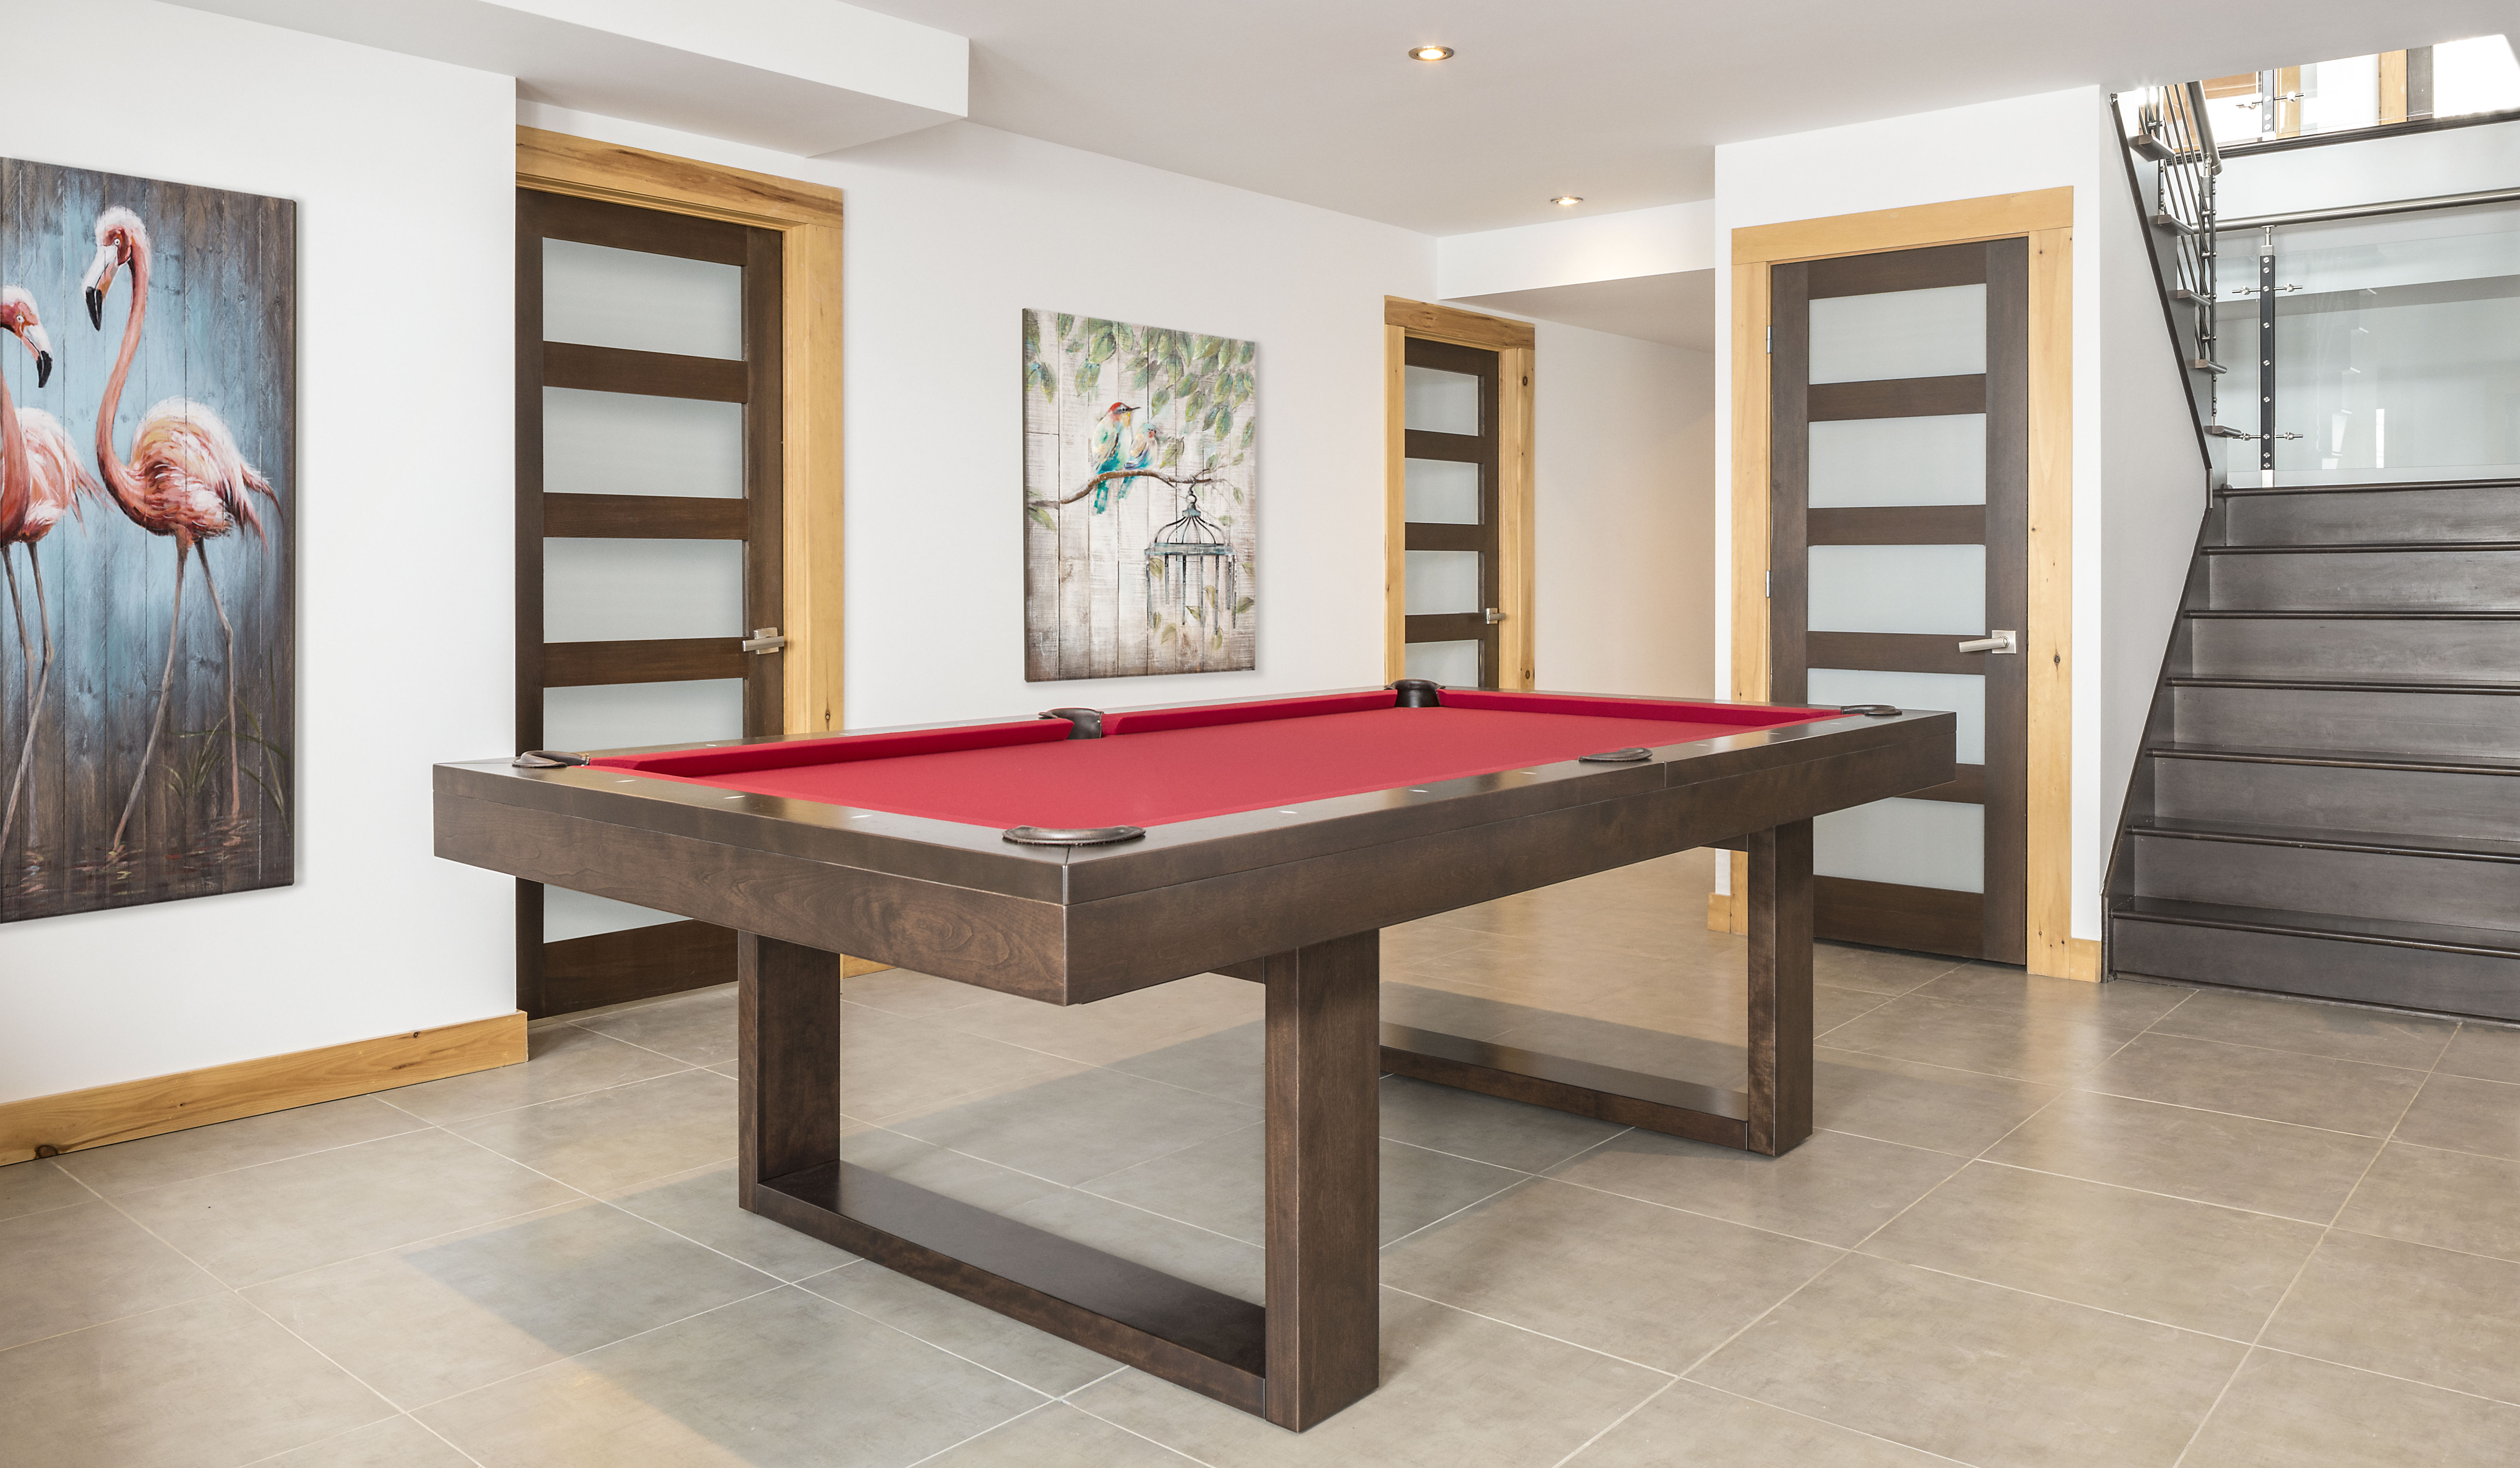 Red and Wood Pool Table